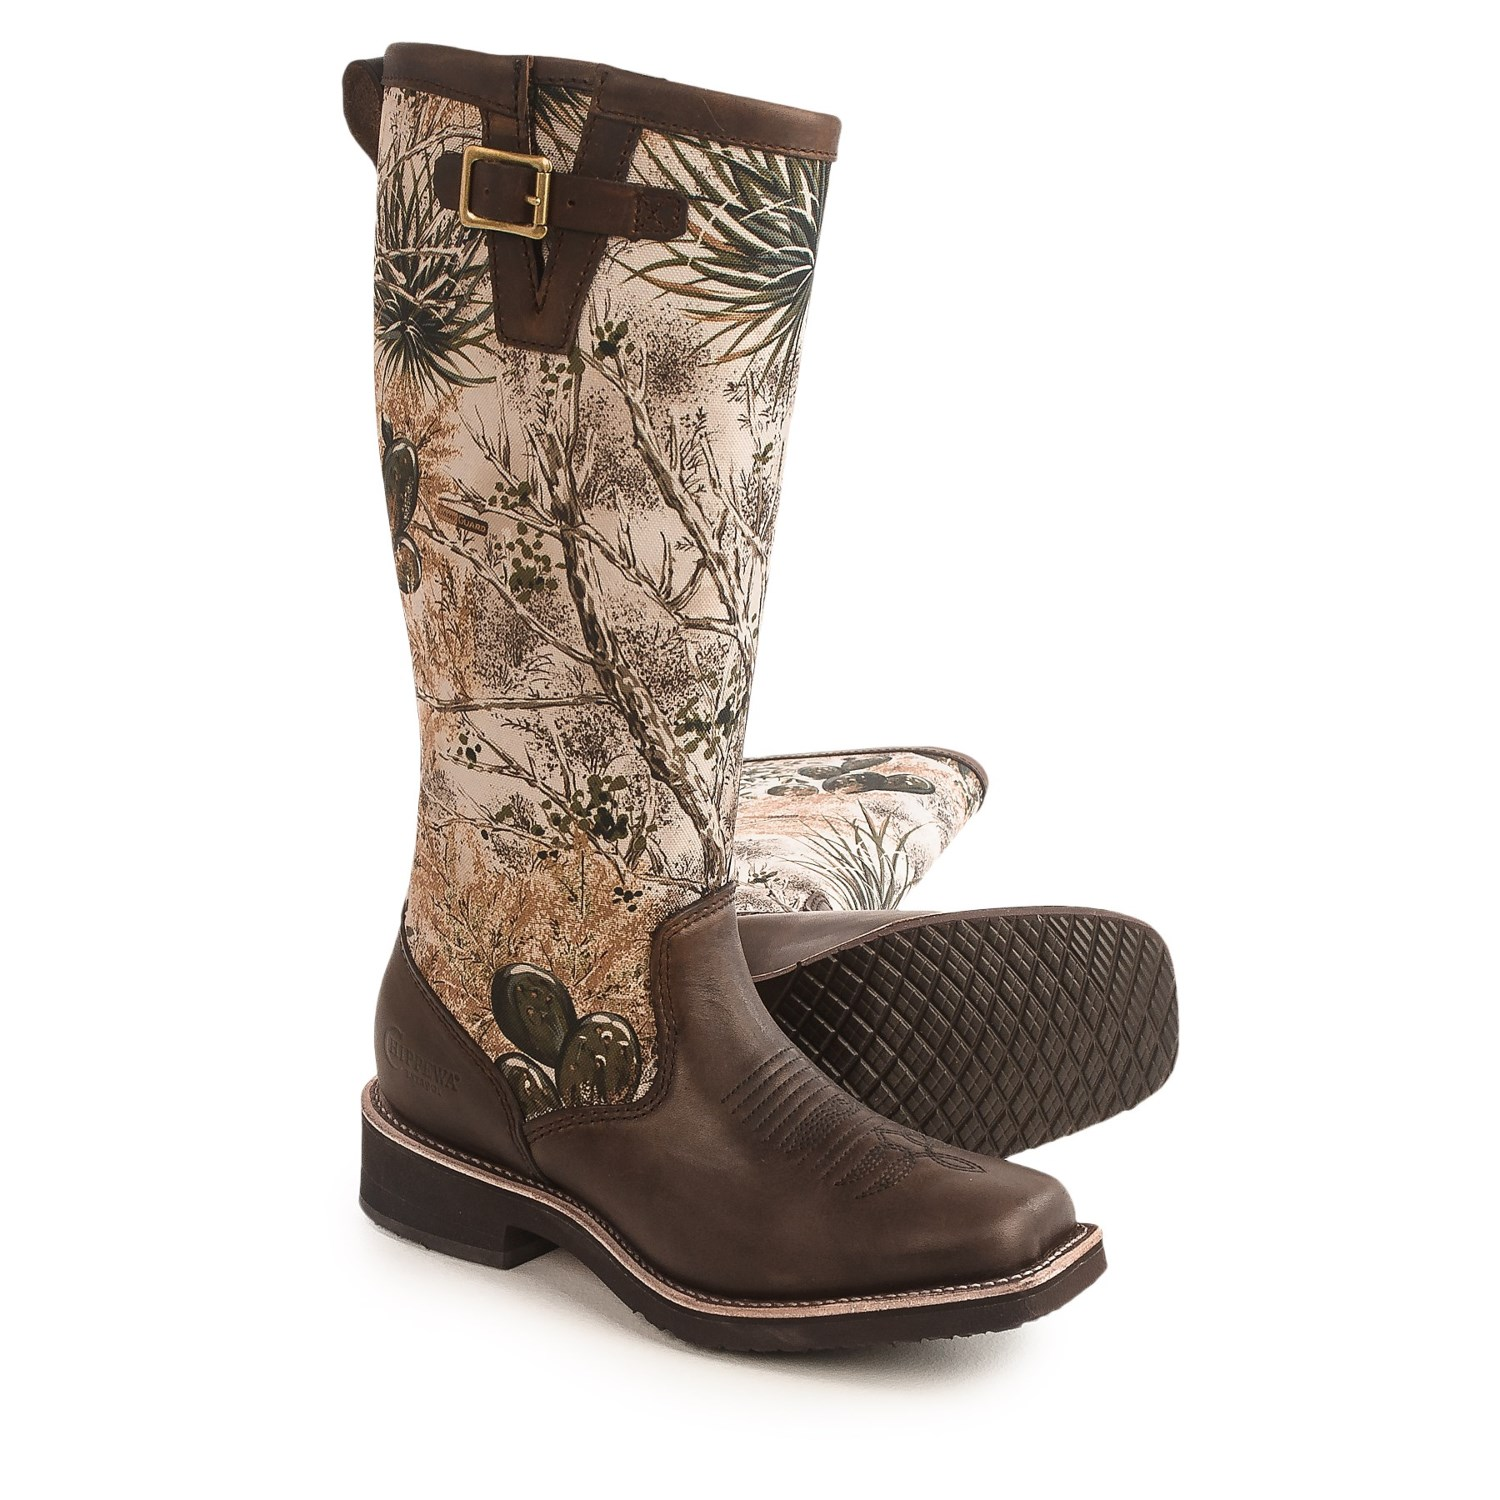 chippewa gameguard snake boots for save 56